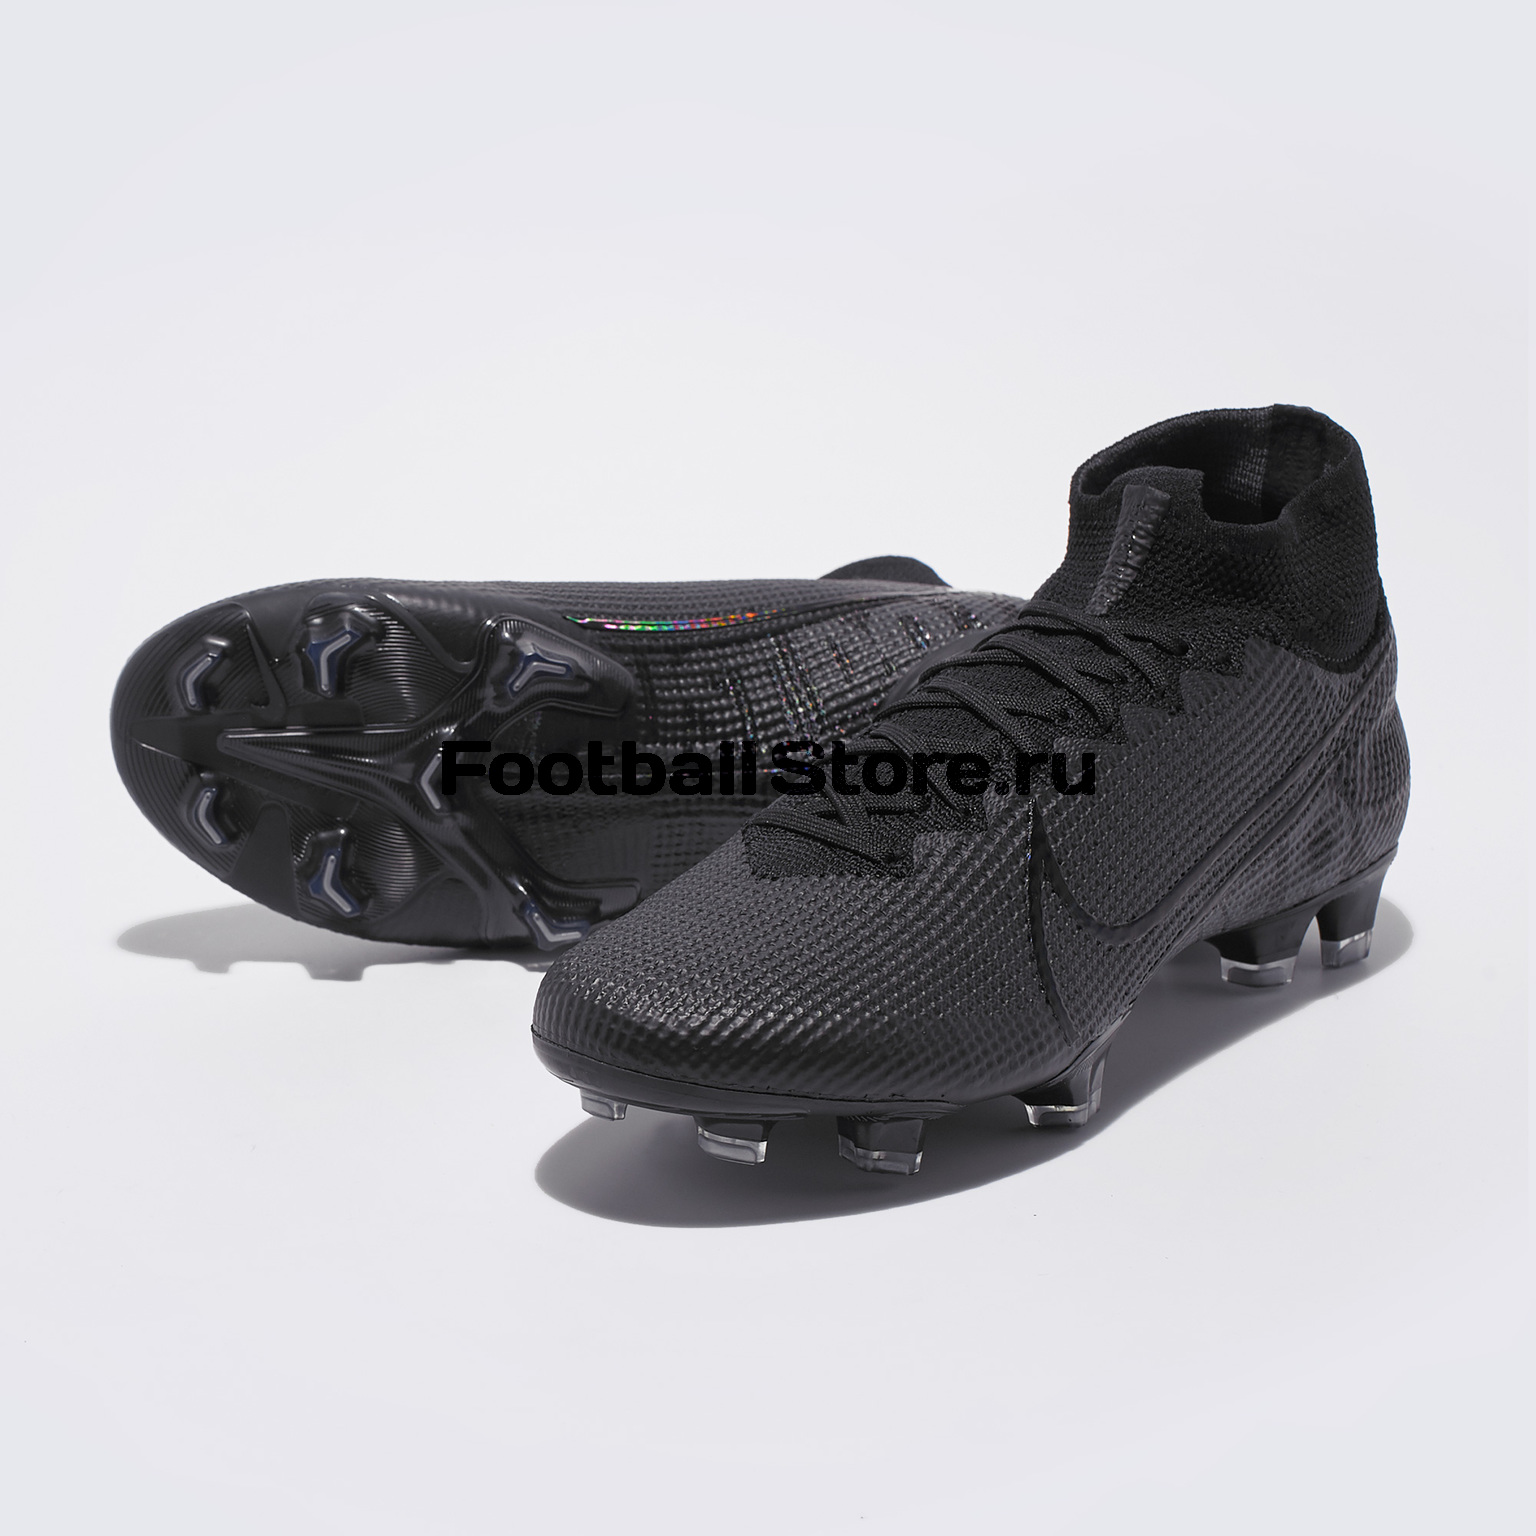 цена на Бутсы Nike Superfly 7 Elite FG AQ4174-001